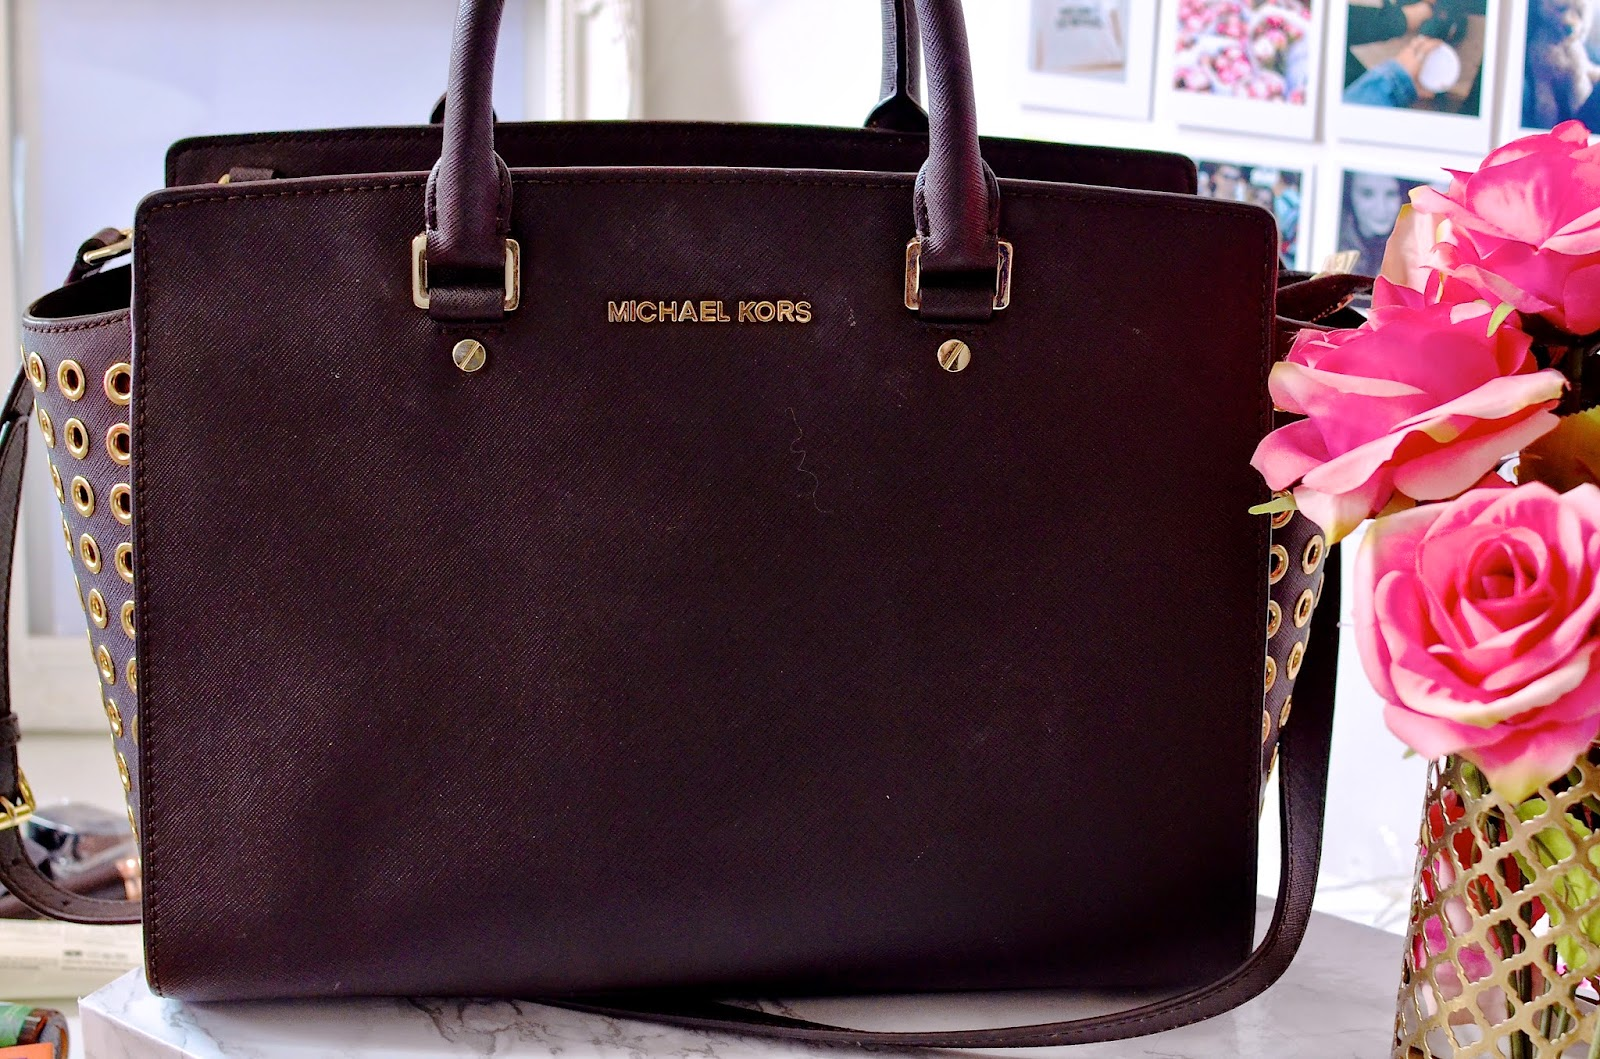 whats in my handbag, things you'll always find in my handbag, Michael Kors, handbag, selma bag, Michael Kors Selma bag, designer bag,